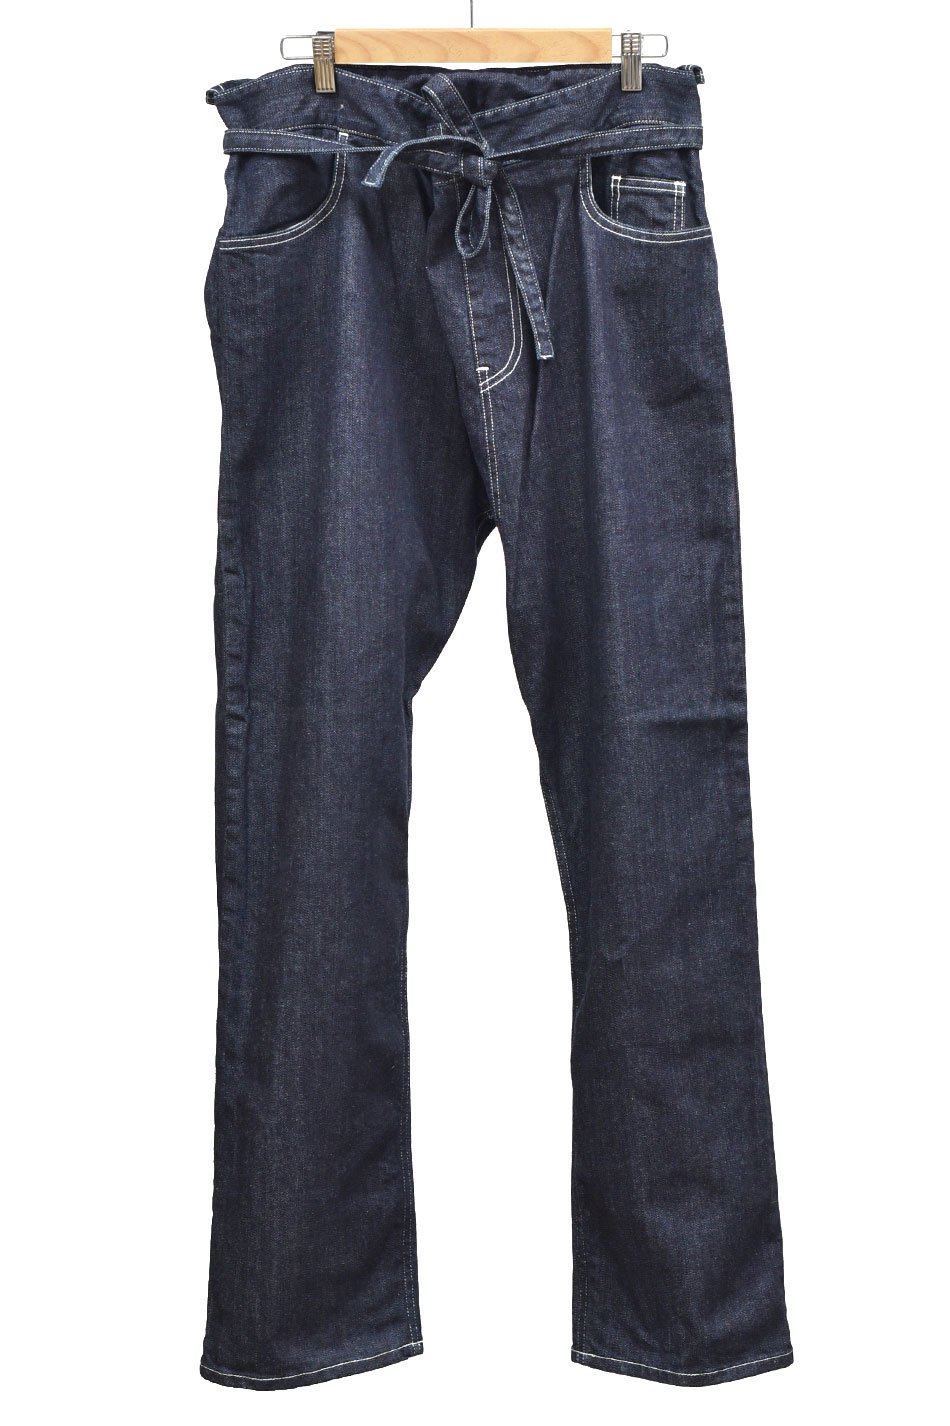 ARIGATO FAKKYU - アリガトファッキュ DENIM THAI PANTS / ONE WASH<img class='new_mark_img2' src='https://img.shop-pro.jp/img/new/icons5.gif' style='border:none;display:inline;margin:0px;padding:0px;width:auto;' />